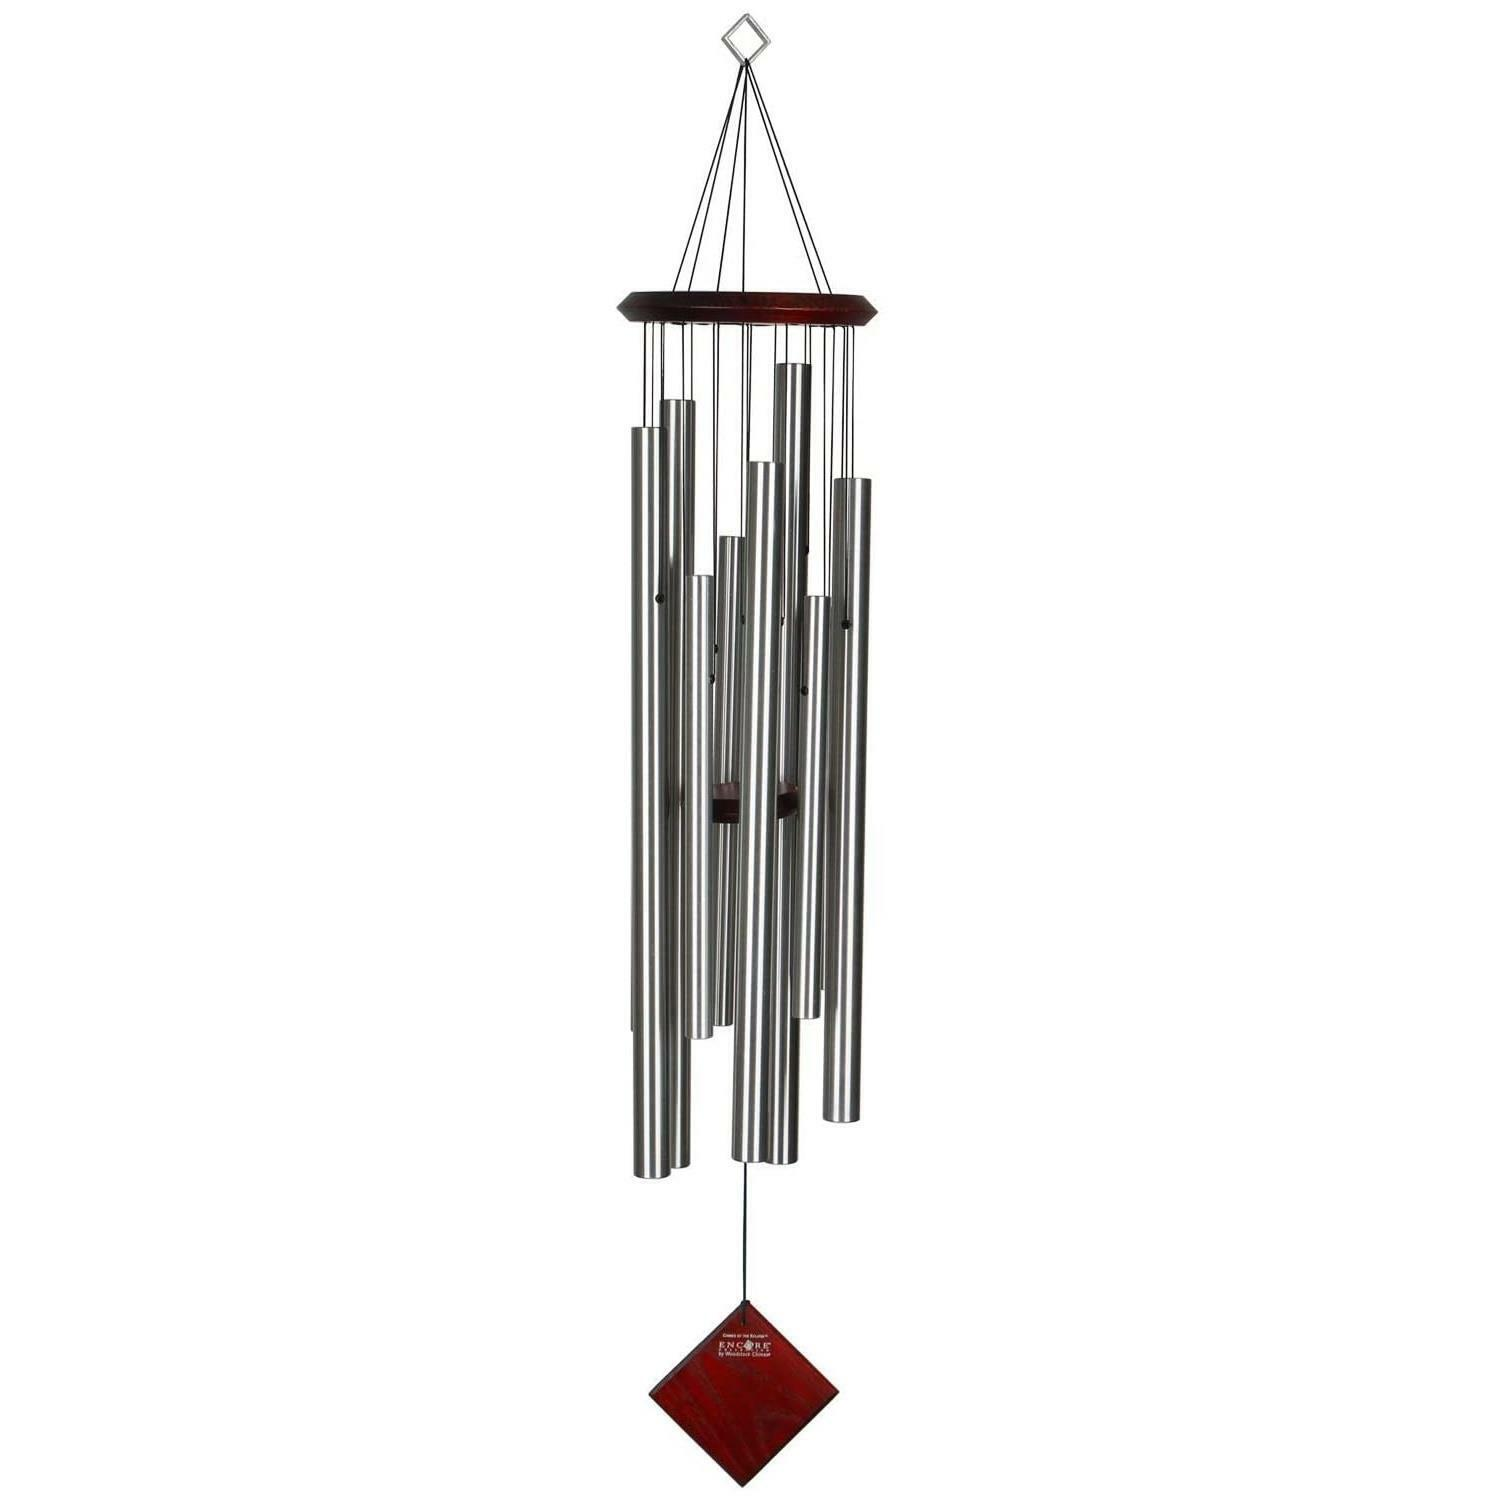 Woodstock Encore Chimes Of Eclipse Silver 102cm Large Tuned Musical Windchime